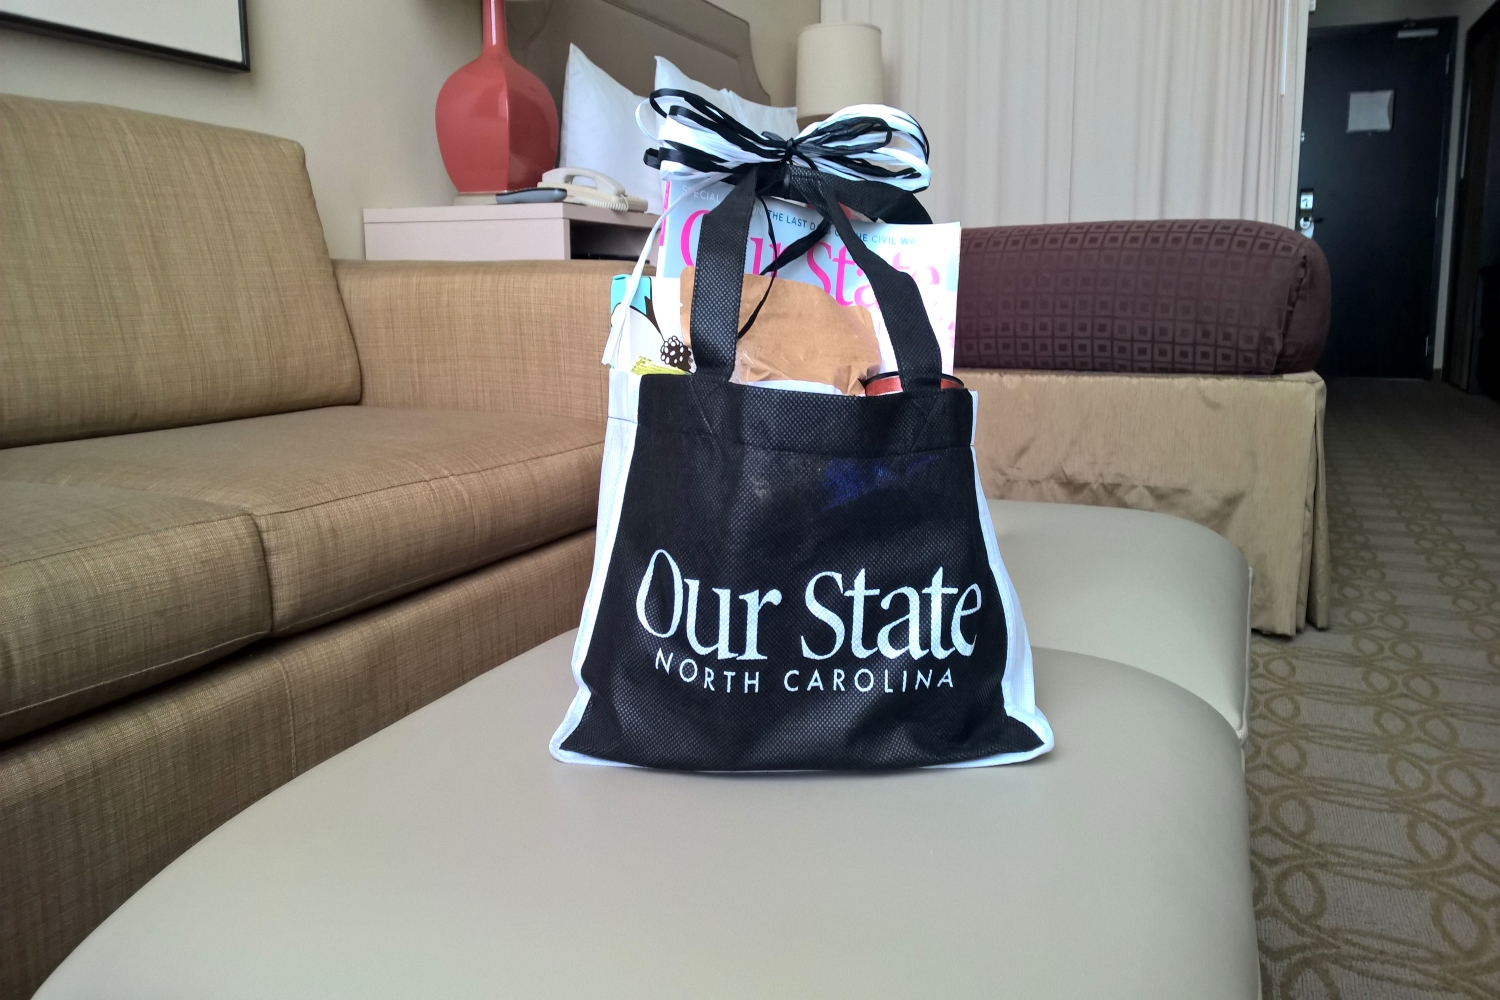 Our State Package at O.Henry Hotel in Greensboro, NC